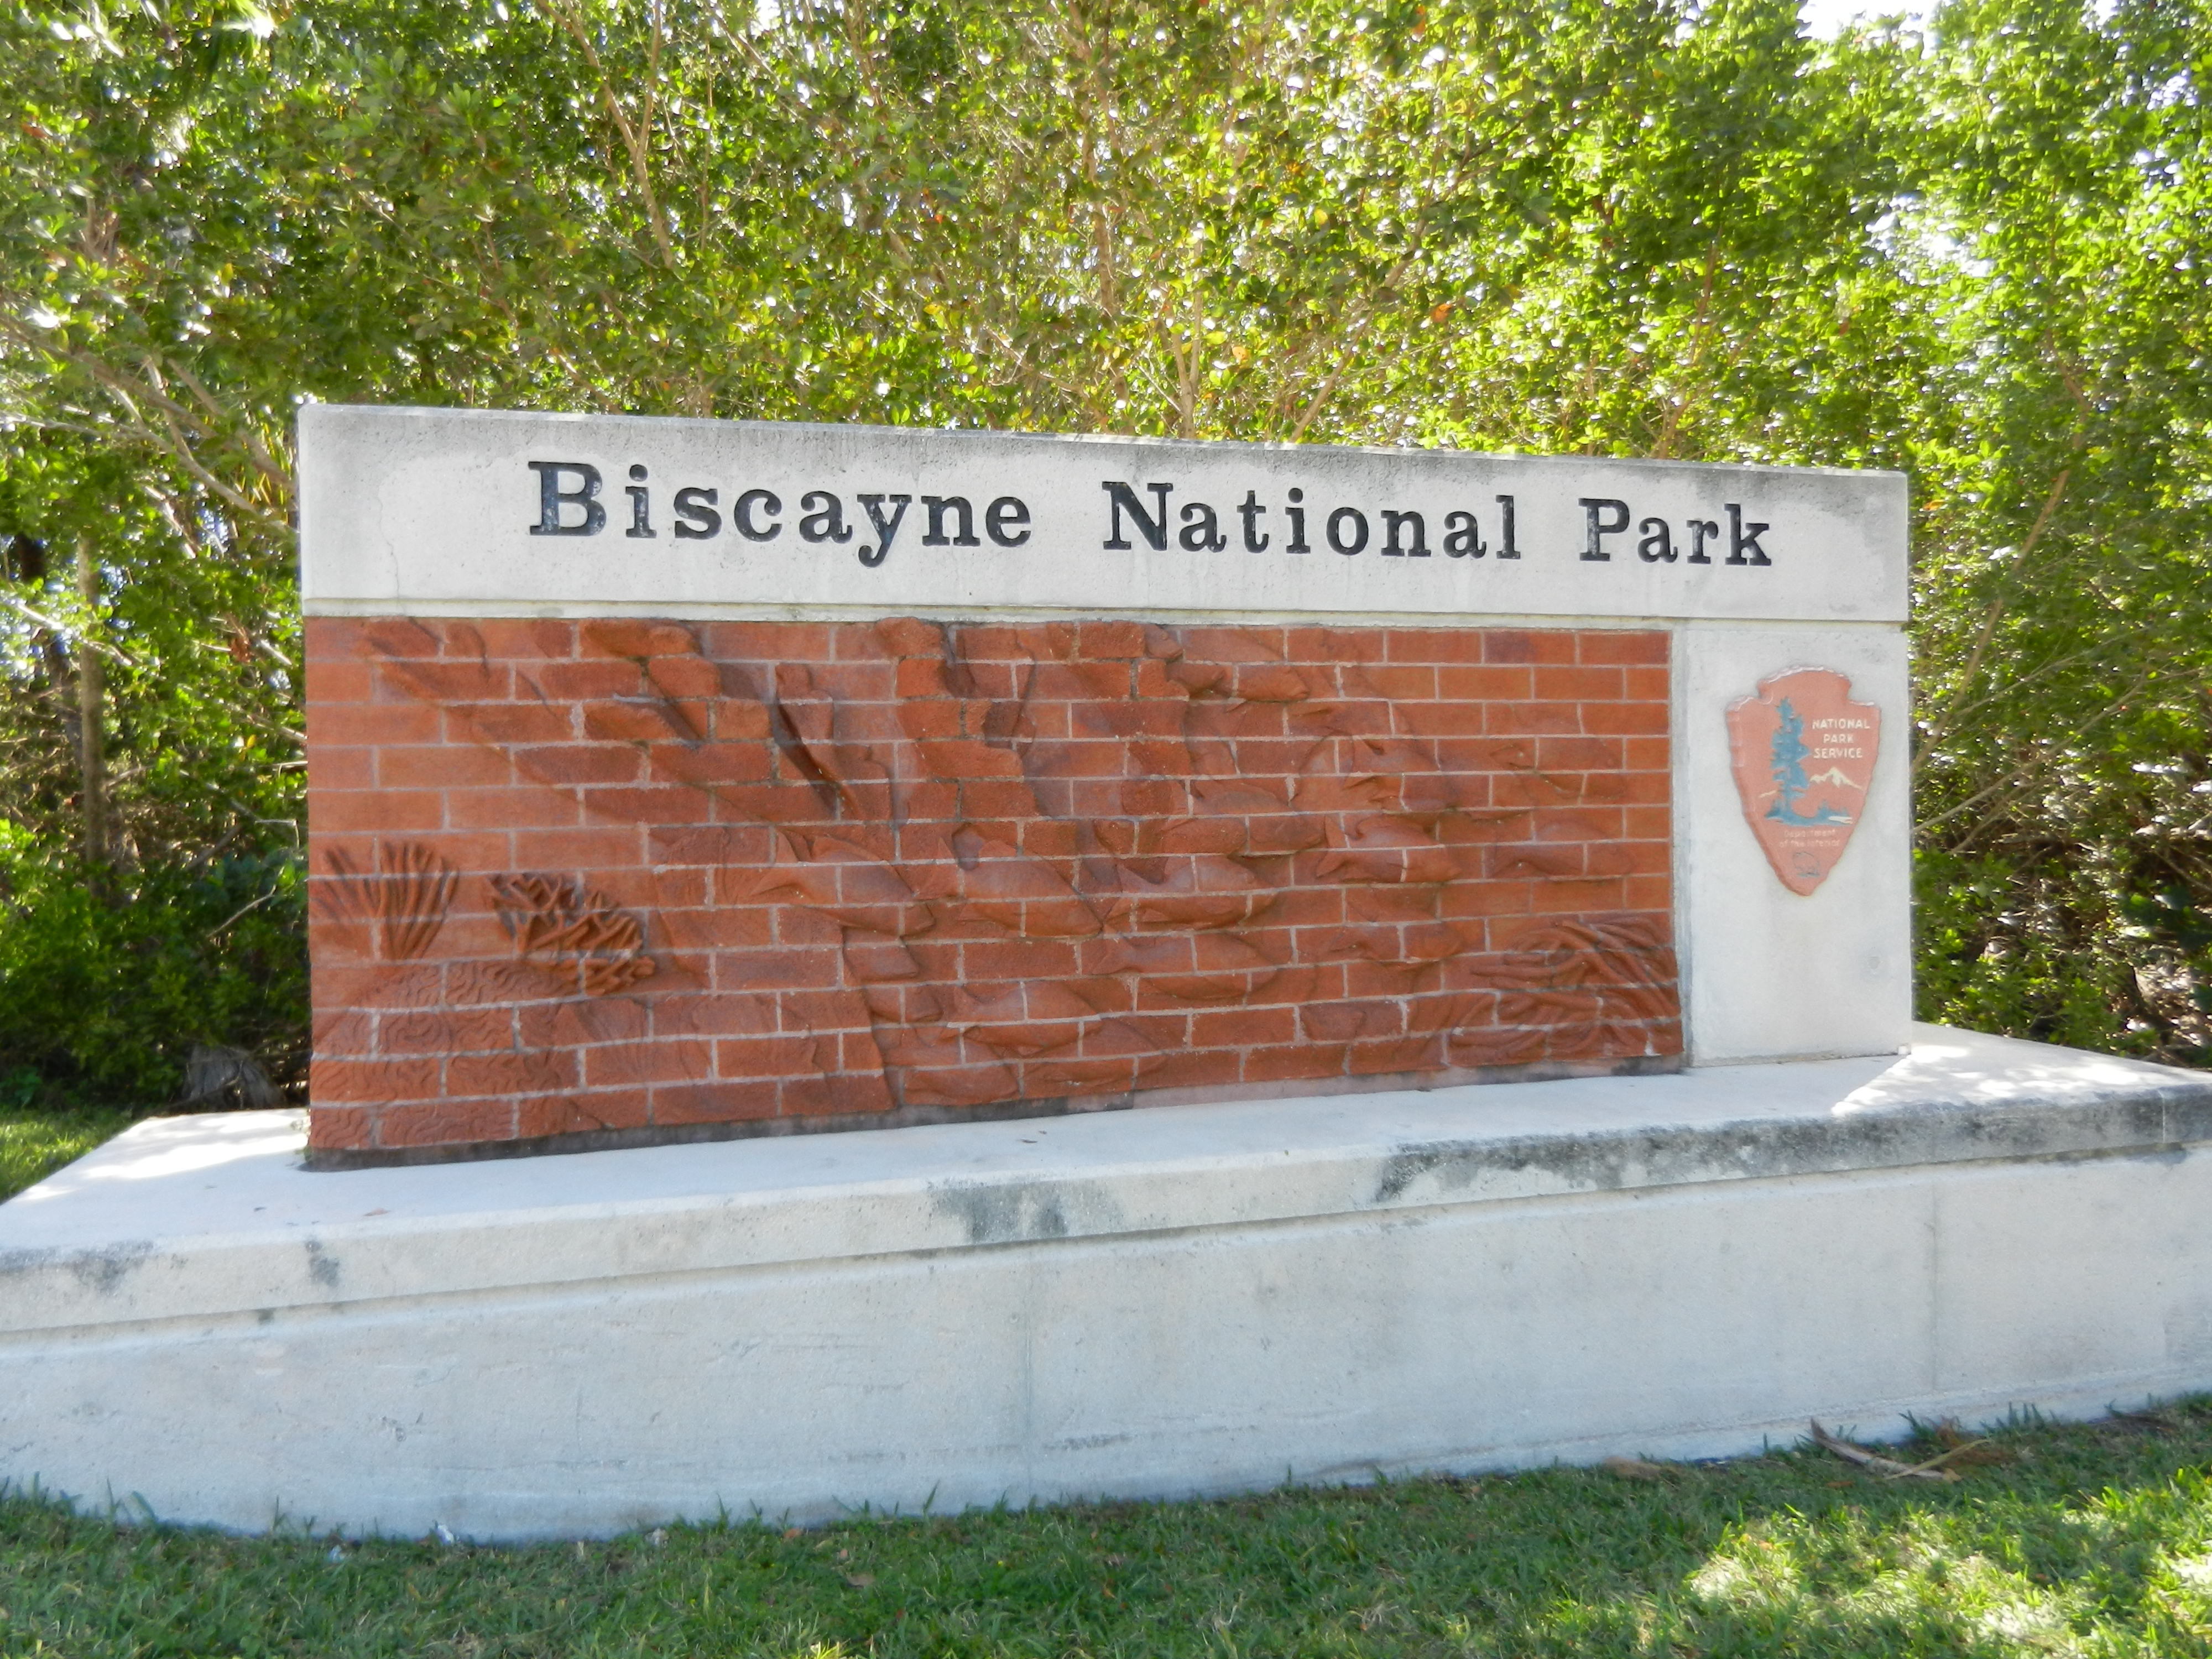 Biscayne National Park sign with sculptural relief of fish.